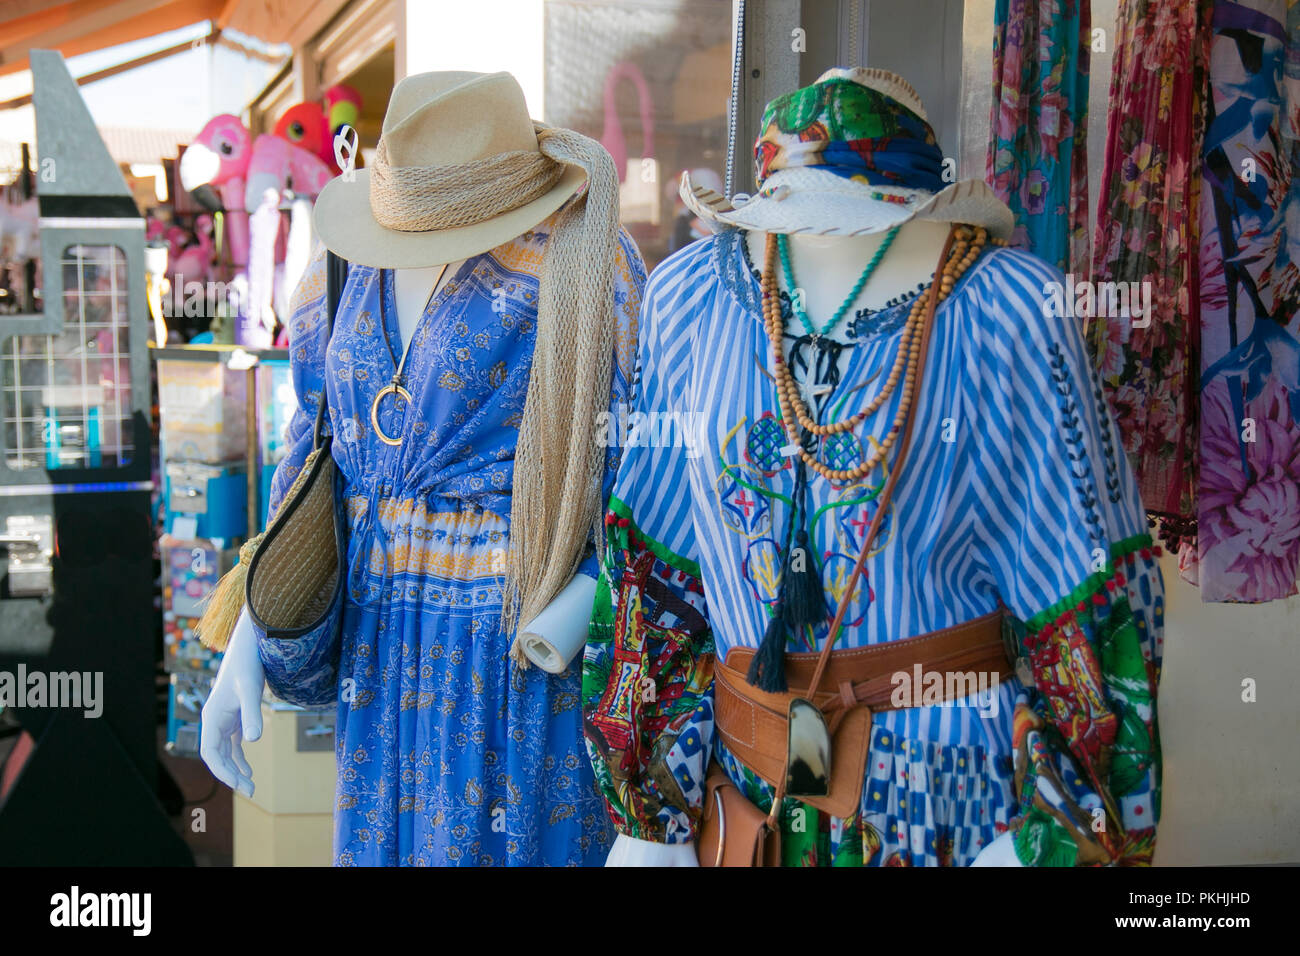 Hippie Clothing Shop Stock Photos Hippie Clothing Shop Stock